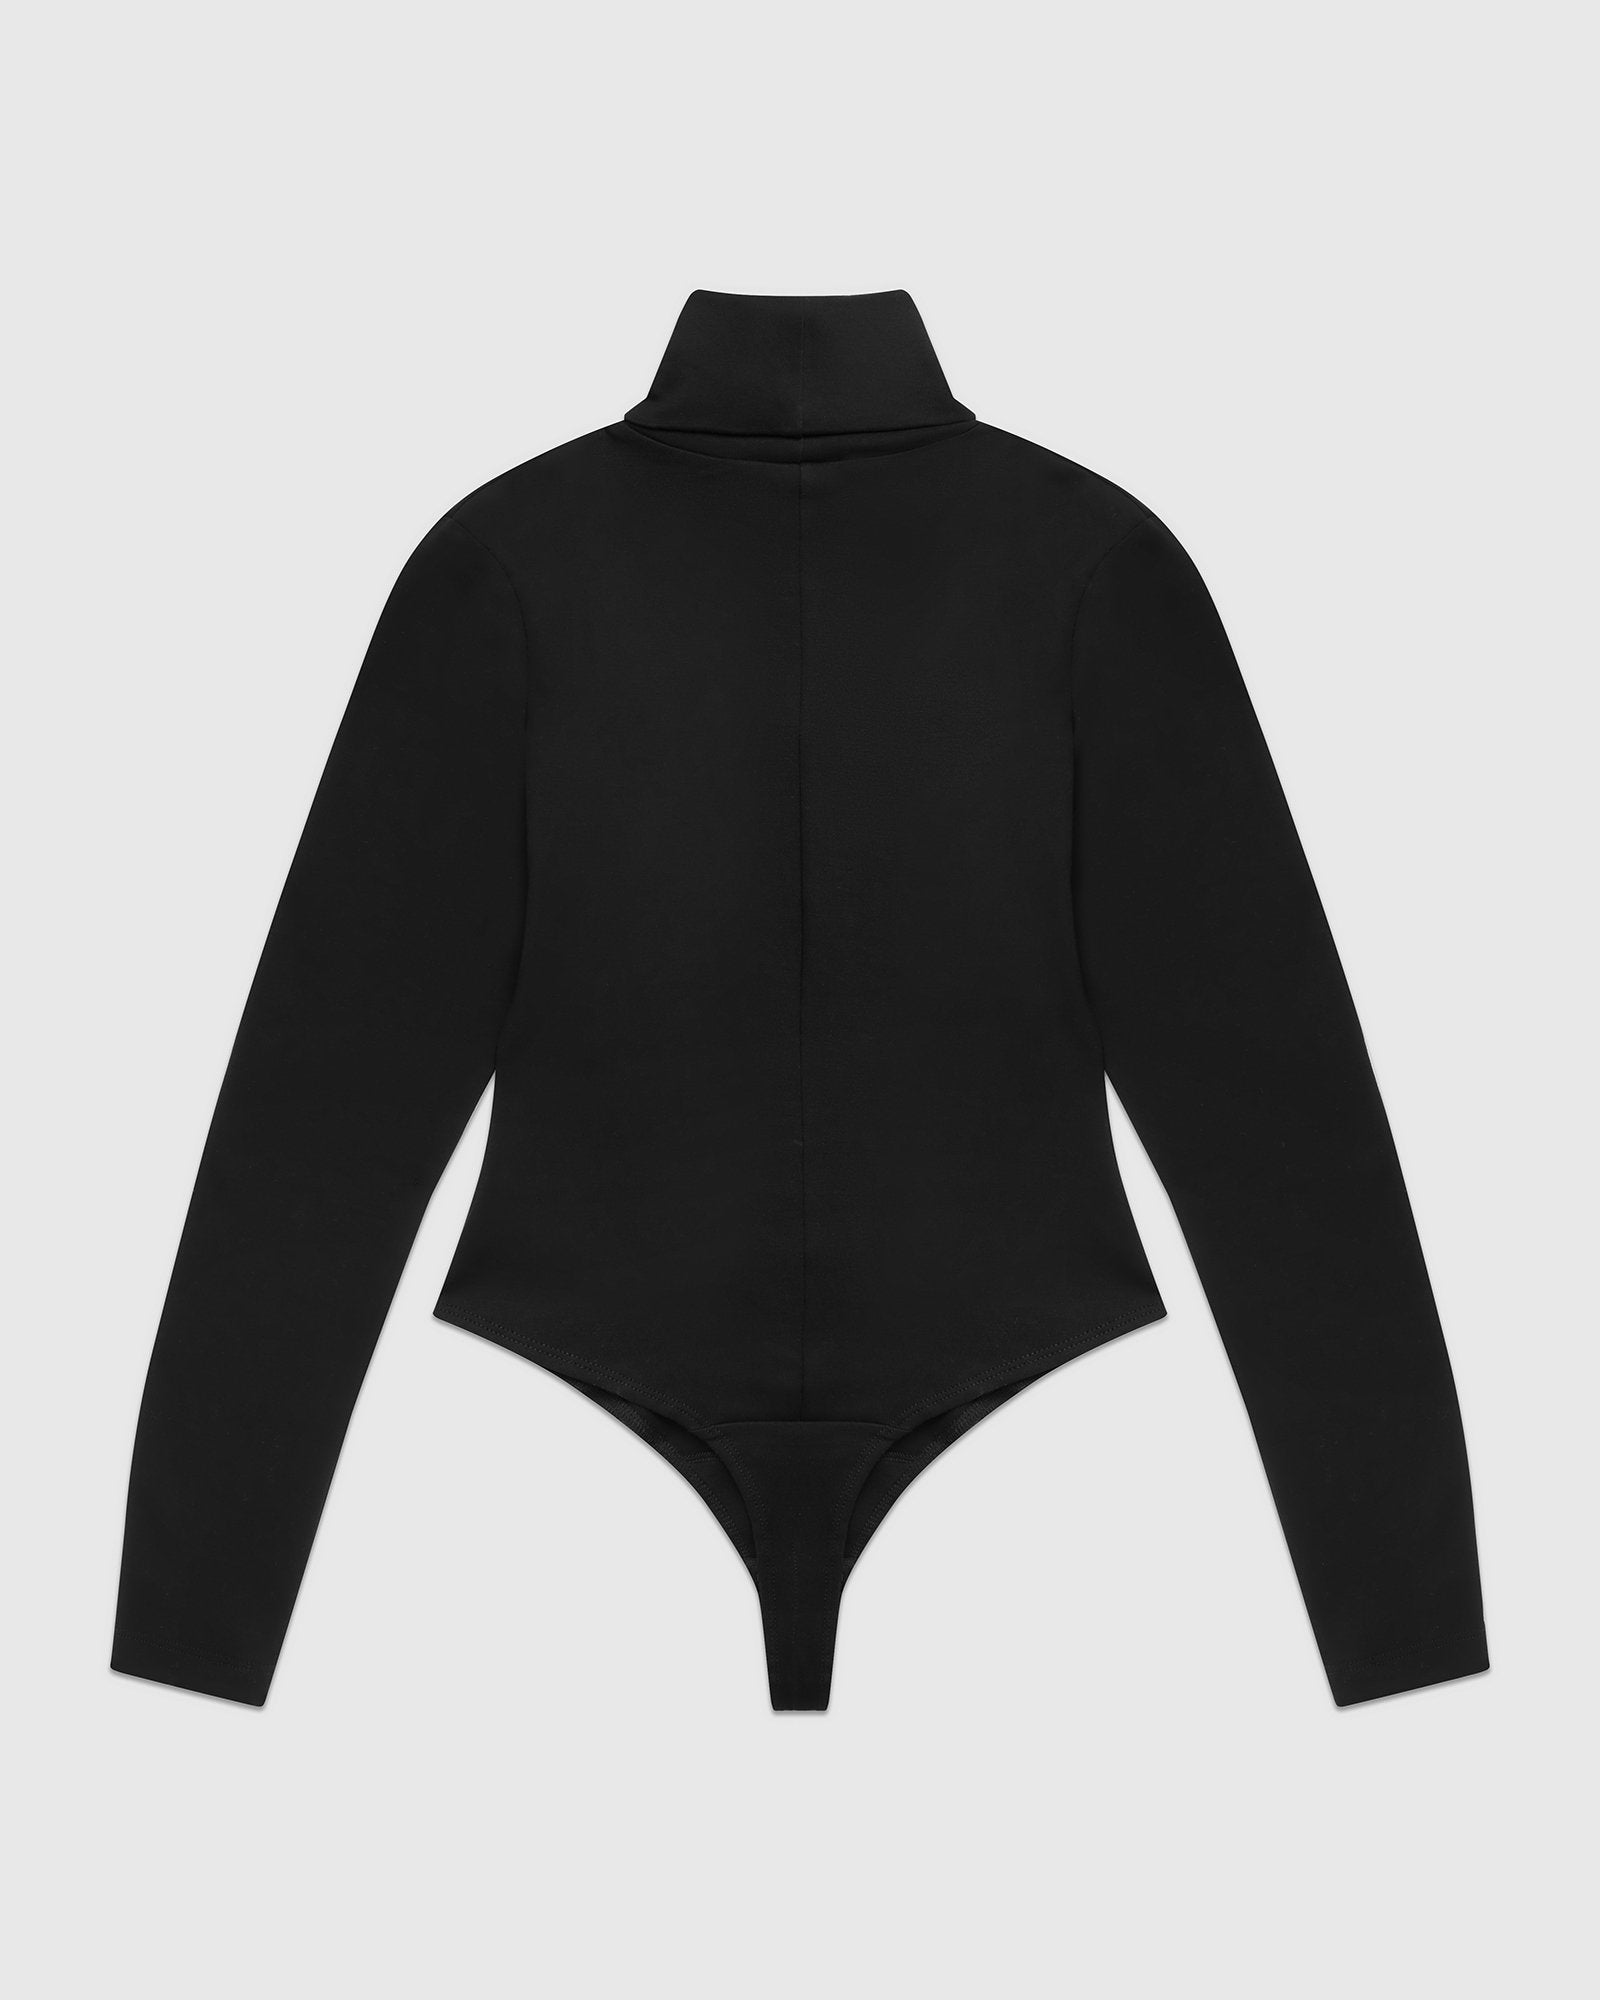 WMNS TURTLENECK BODYSUIT - BLACK IMAGE #2